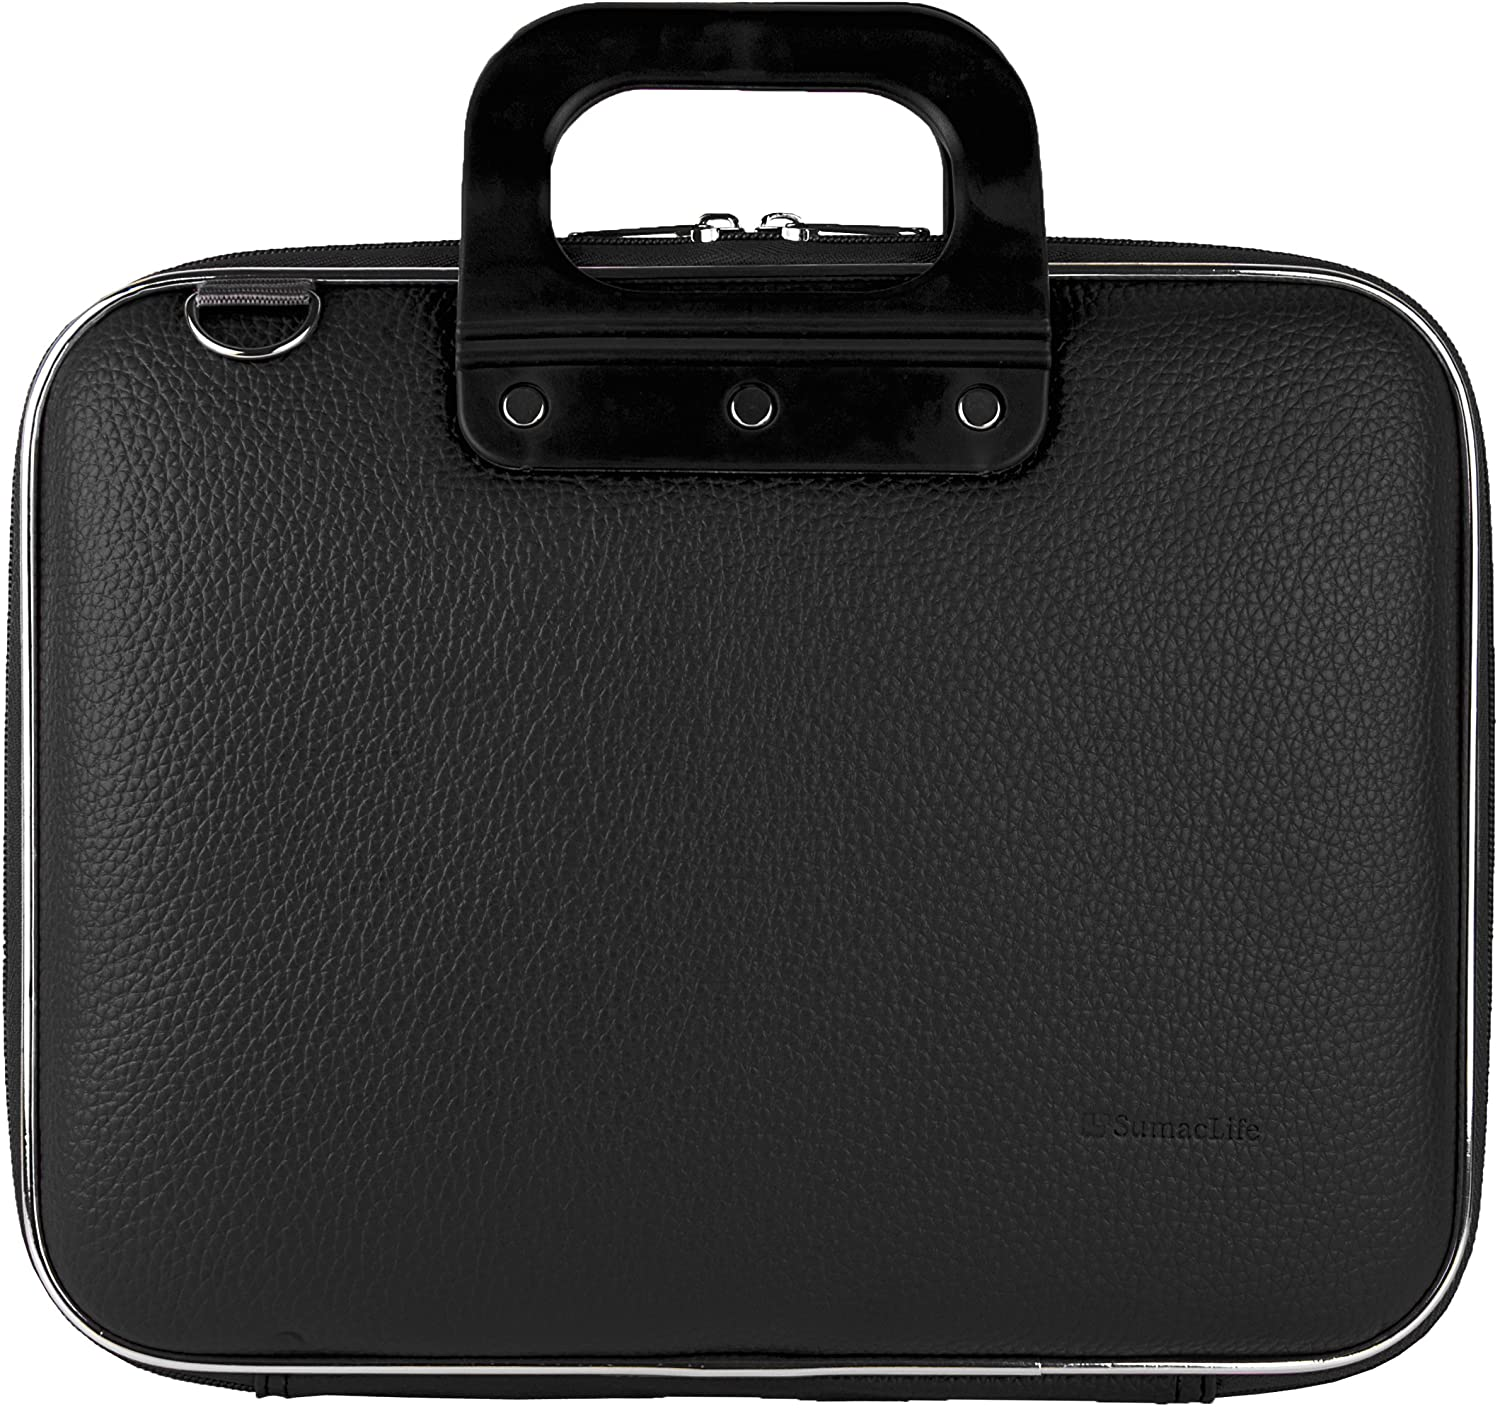 Carrying Case for Dell Inspiron 15, Alienware, Vostro, Latitude, XPS 15